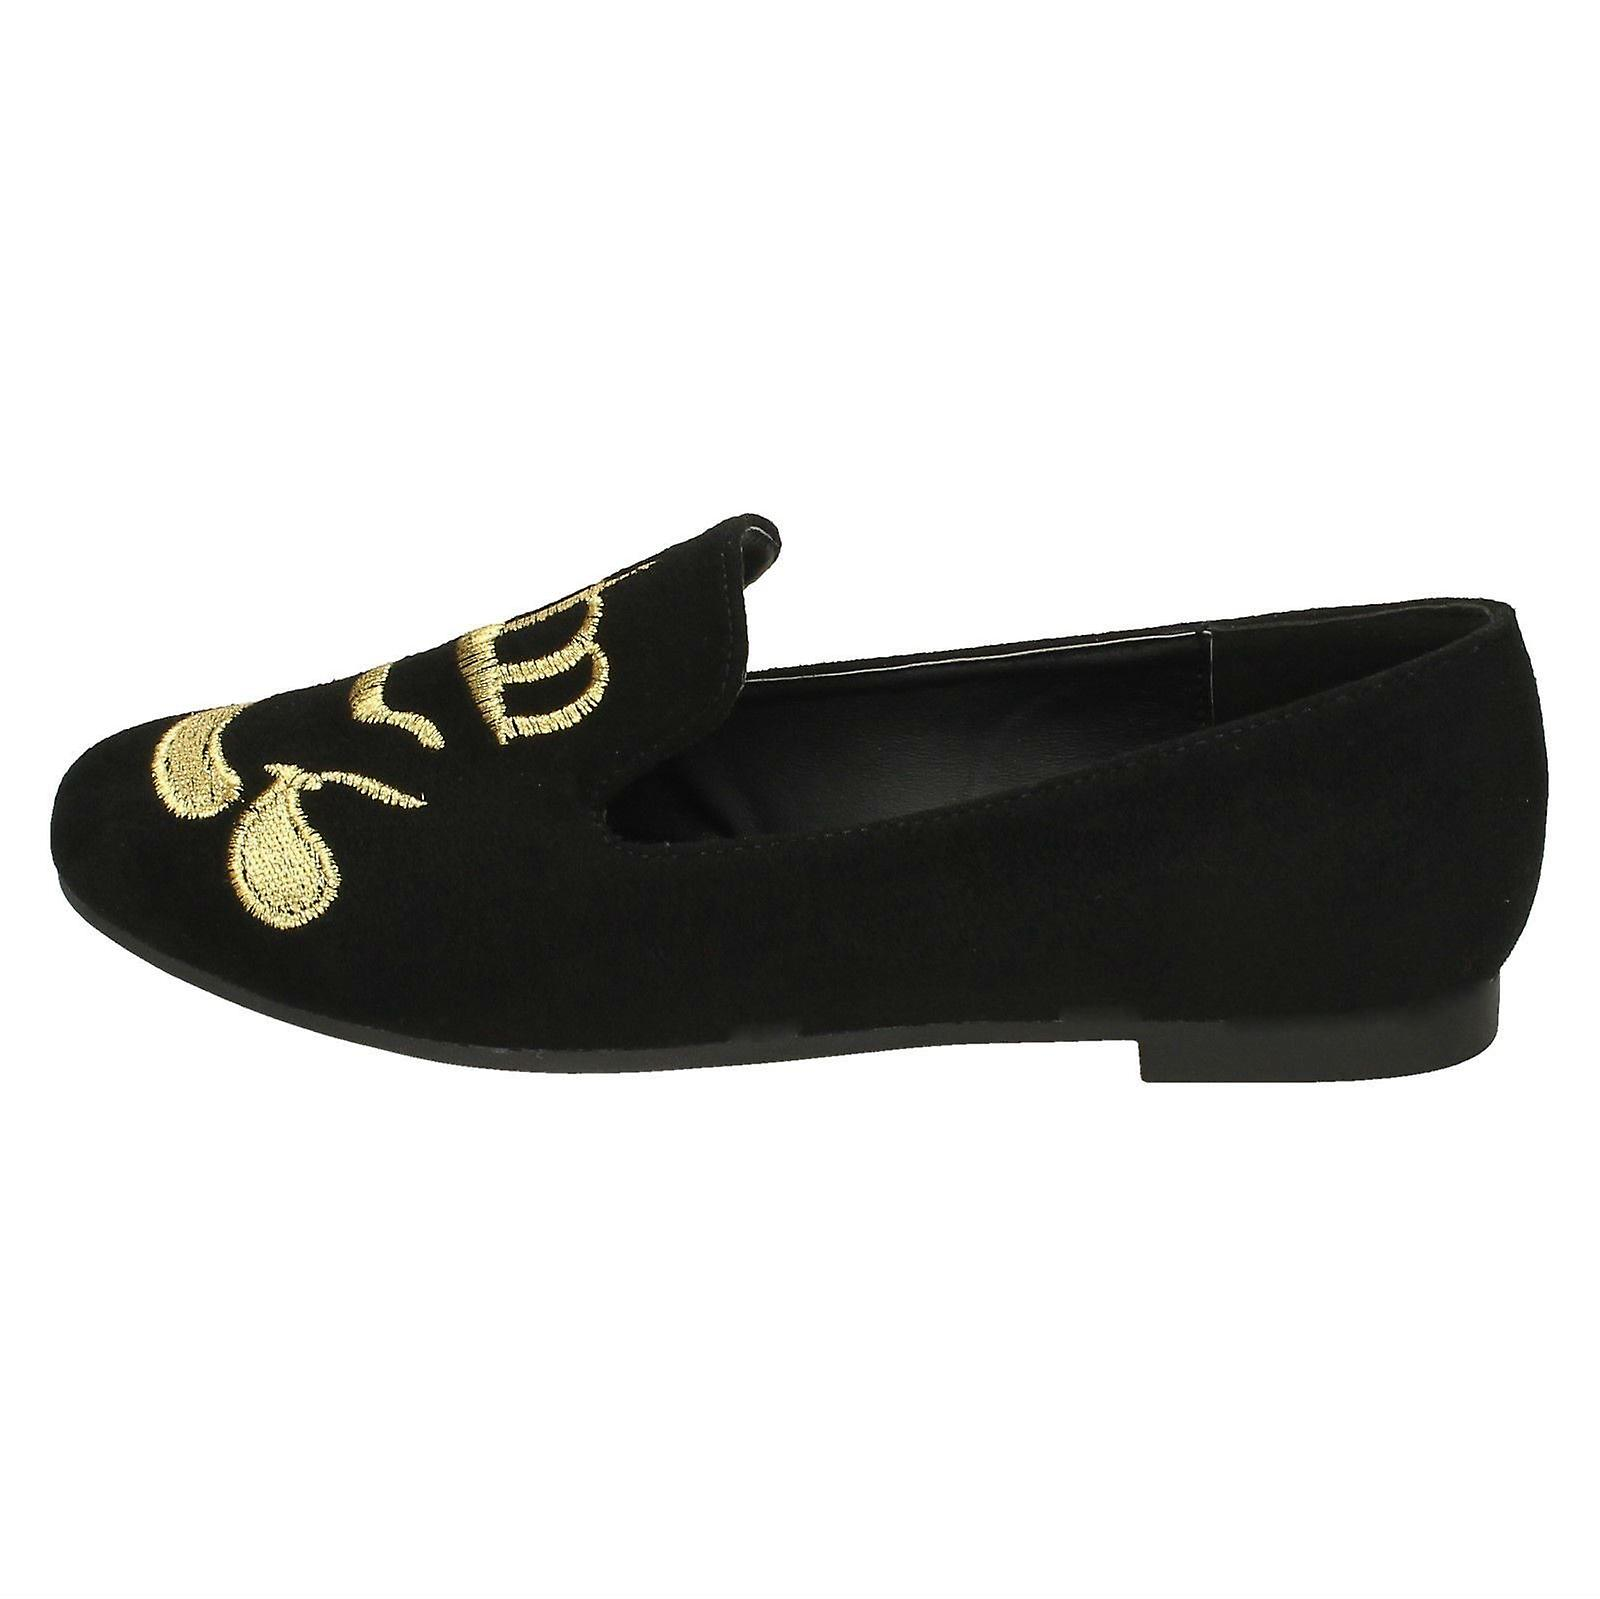 On Flat Cut Spot Ballerinas Ladies Slipper F80308 qUwHgc5